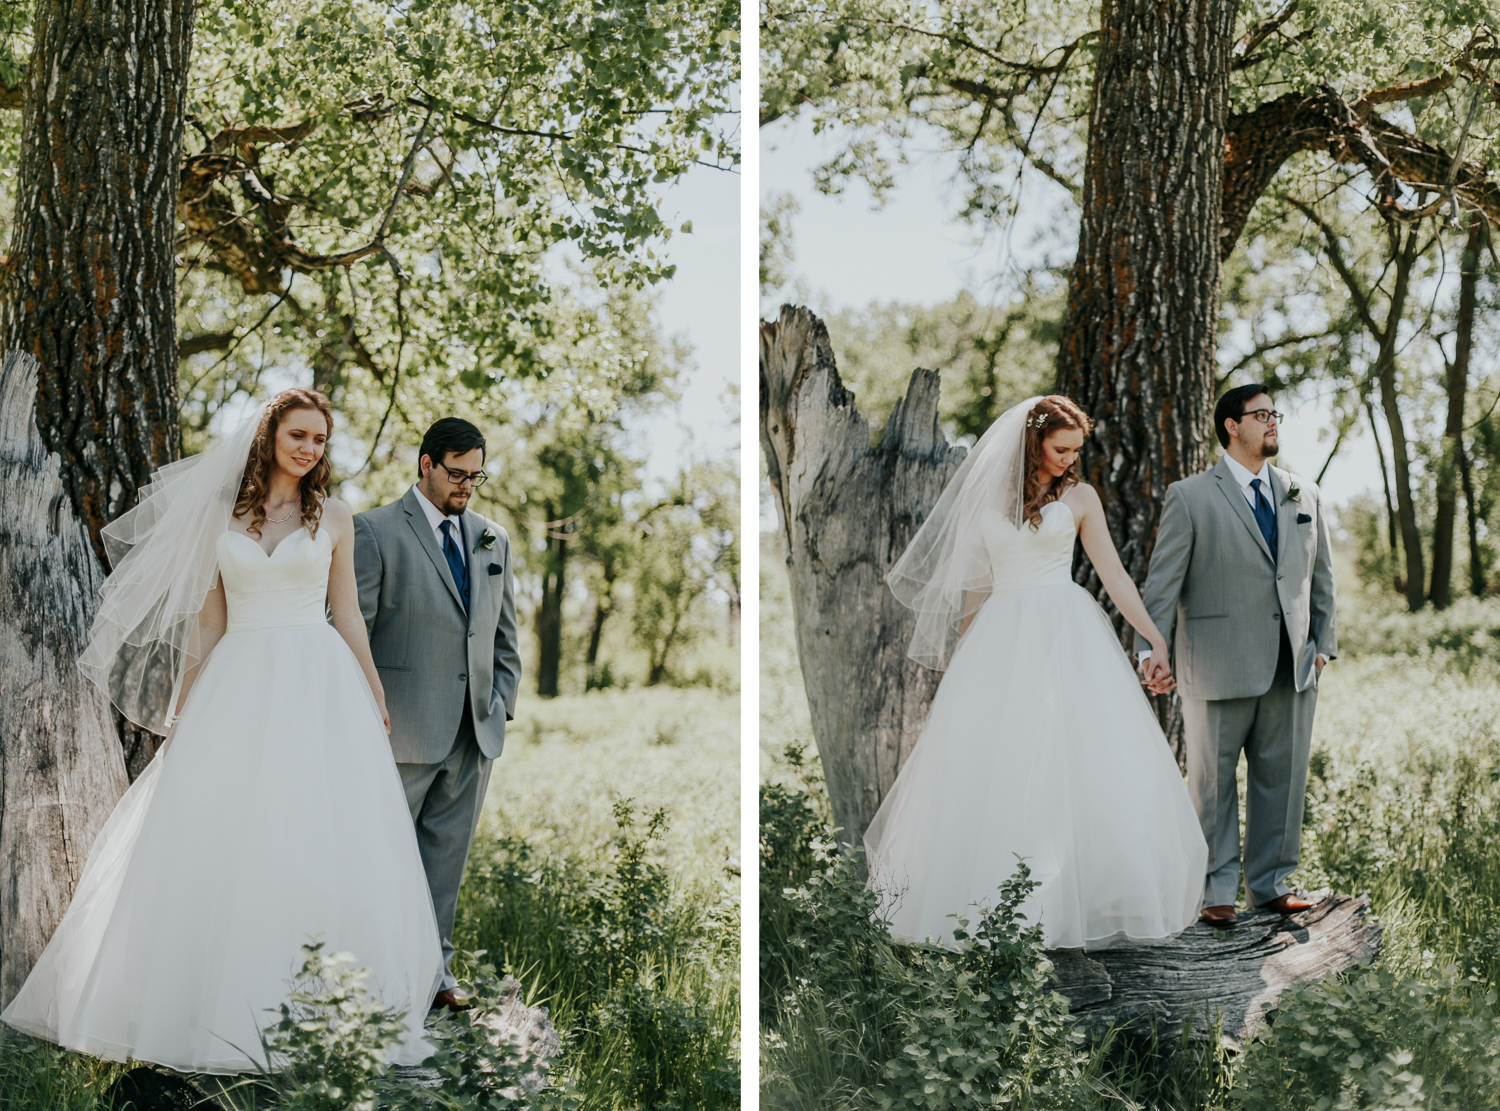 lethbridge-wedding-photographer-love-and-be-loved-photography-dan-tynnea-picture-image-photo-142.jpg